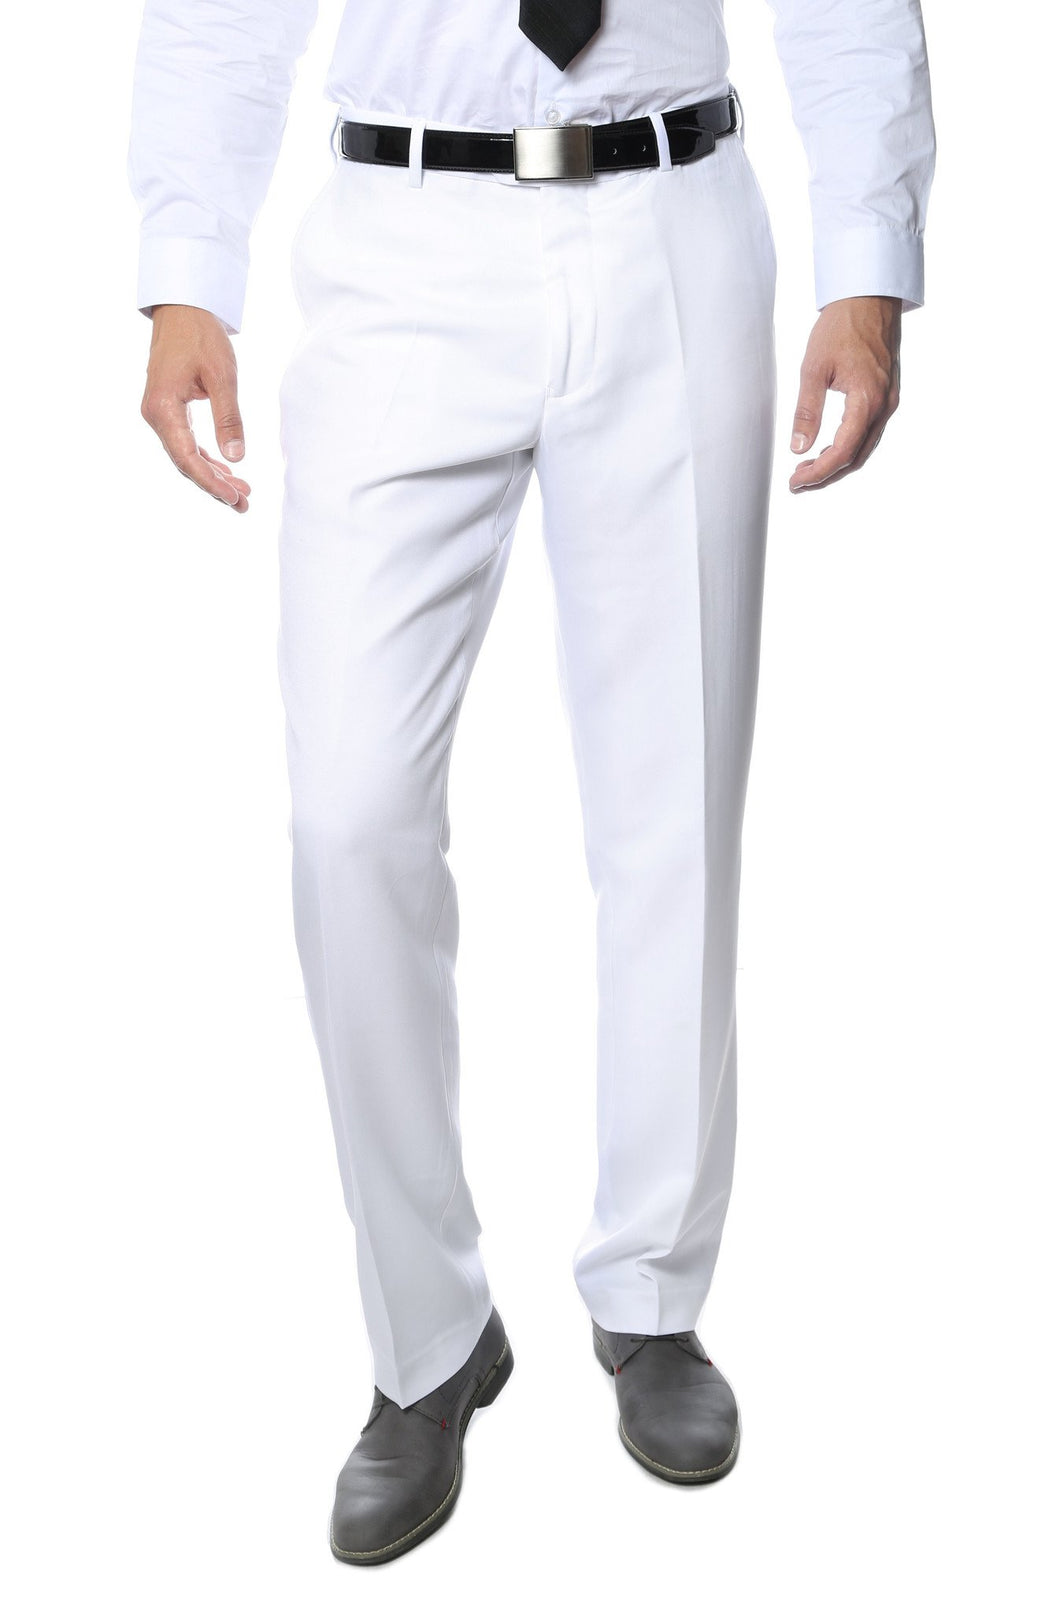 Premium White Regular Fit Suspender Ready Formal & Business Pants - Ferrecci USA